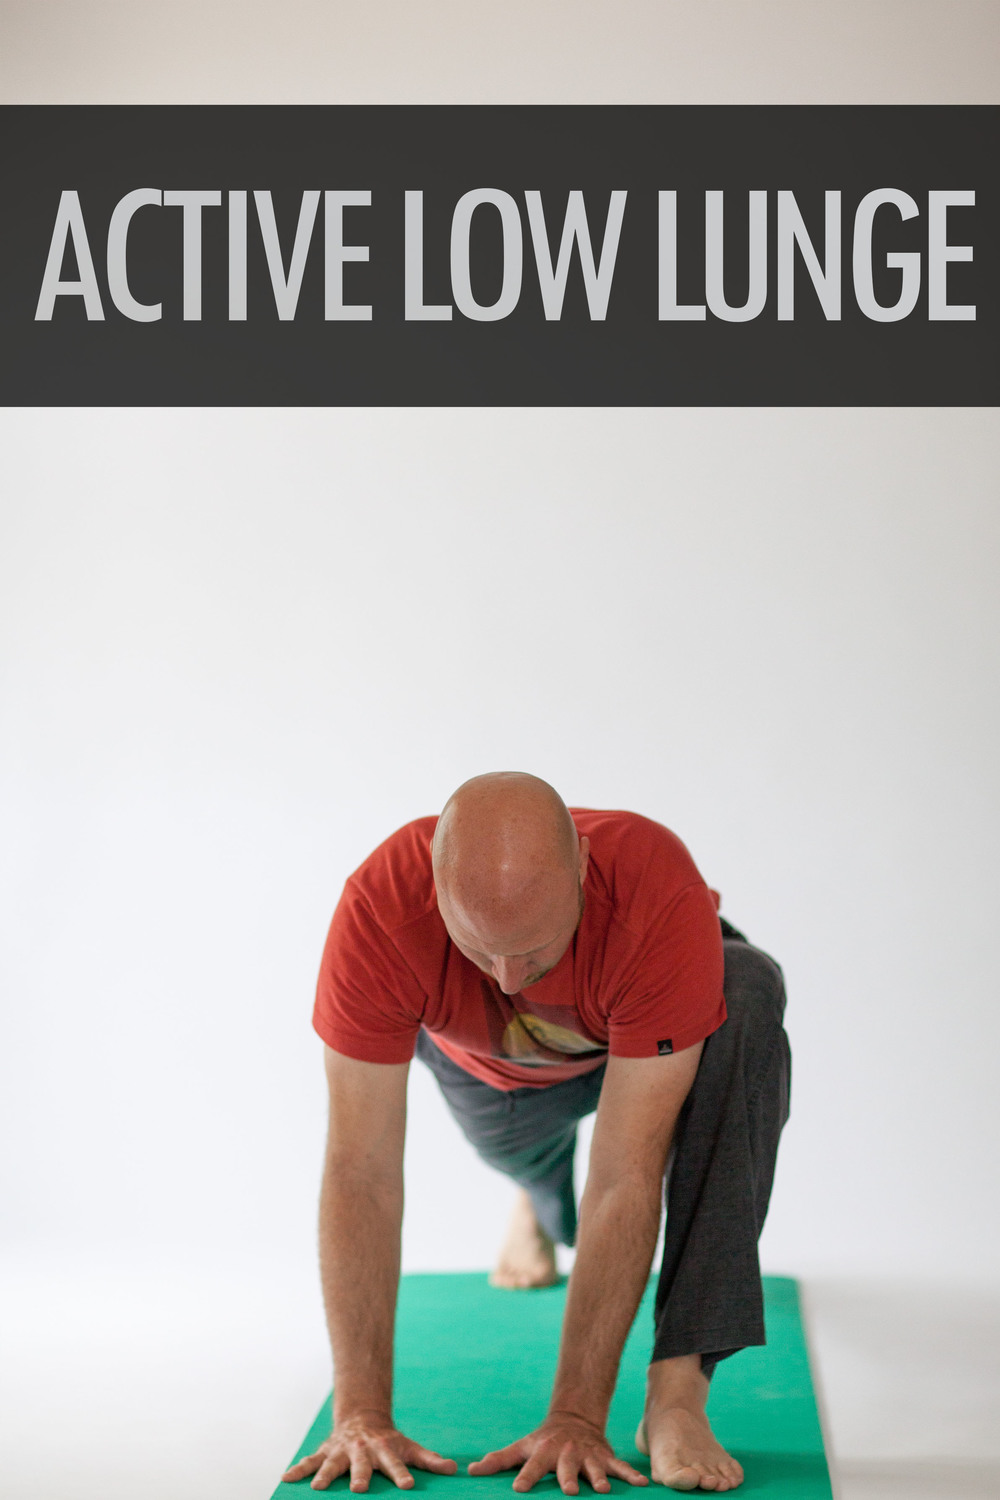 Active Low Lunge.jpg